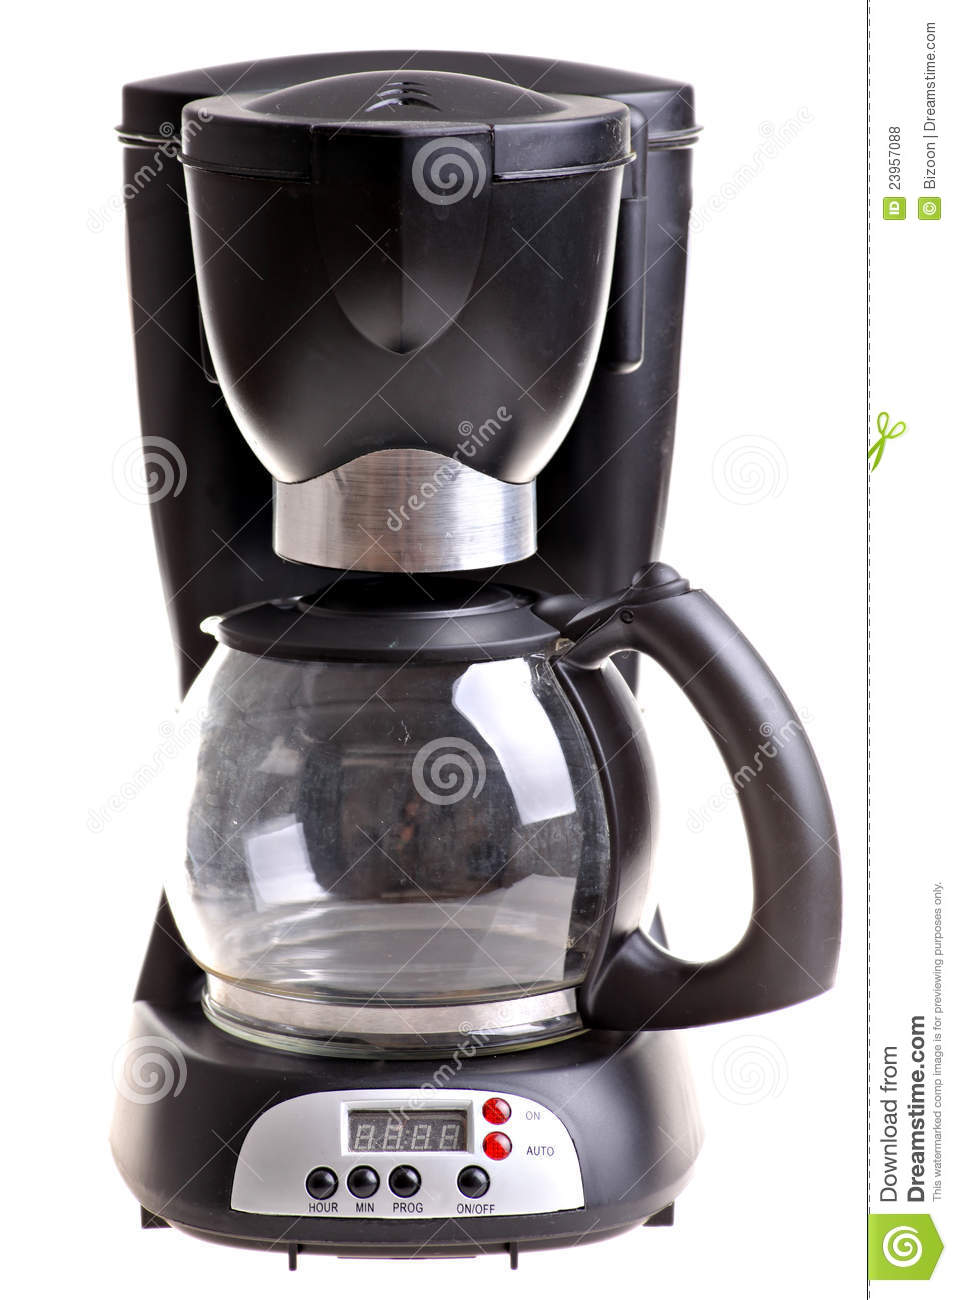 Coffee Maker Z Wave : Coffee Maker Royalty Free Stock Photos - Image: 23957088